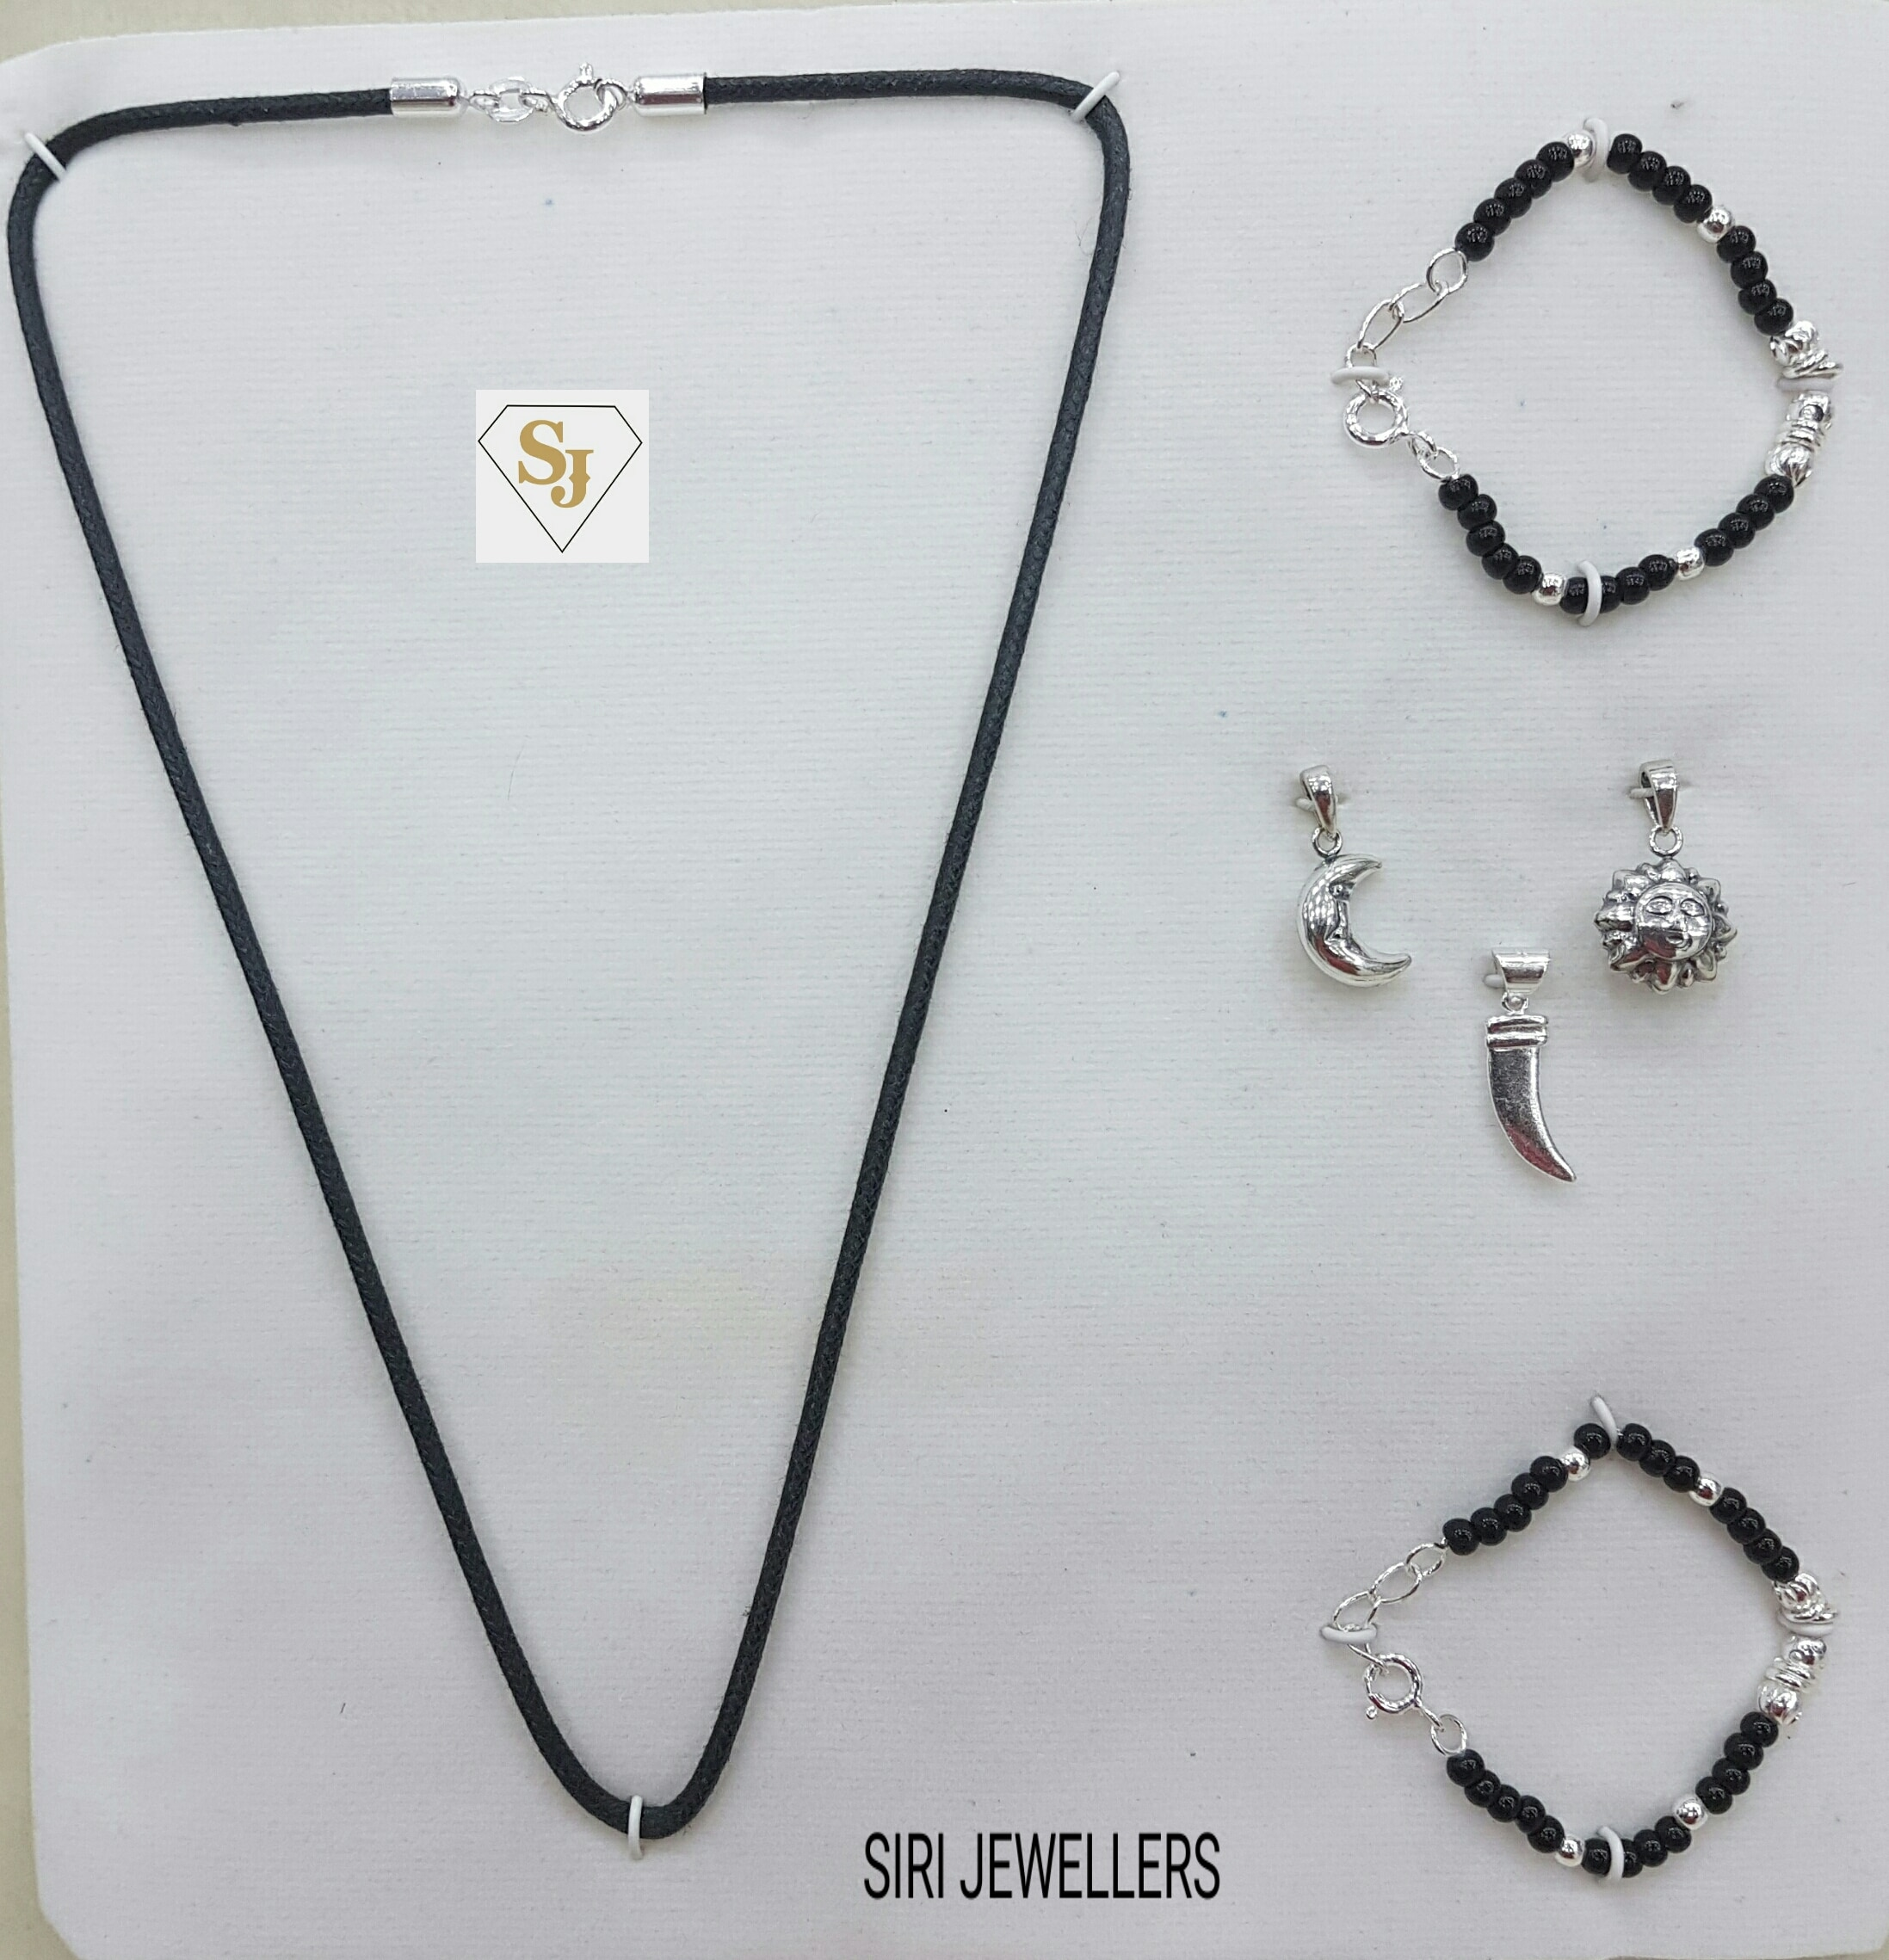 92.5 Silver baby set for new borns the pack contains 2 drushti bangals one black thread and 3 pendents .... very unique item .. lets welcome the baby by adding more colourfull gifts